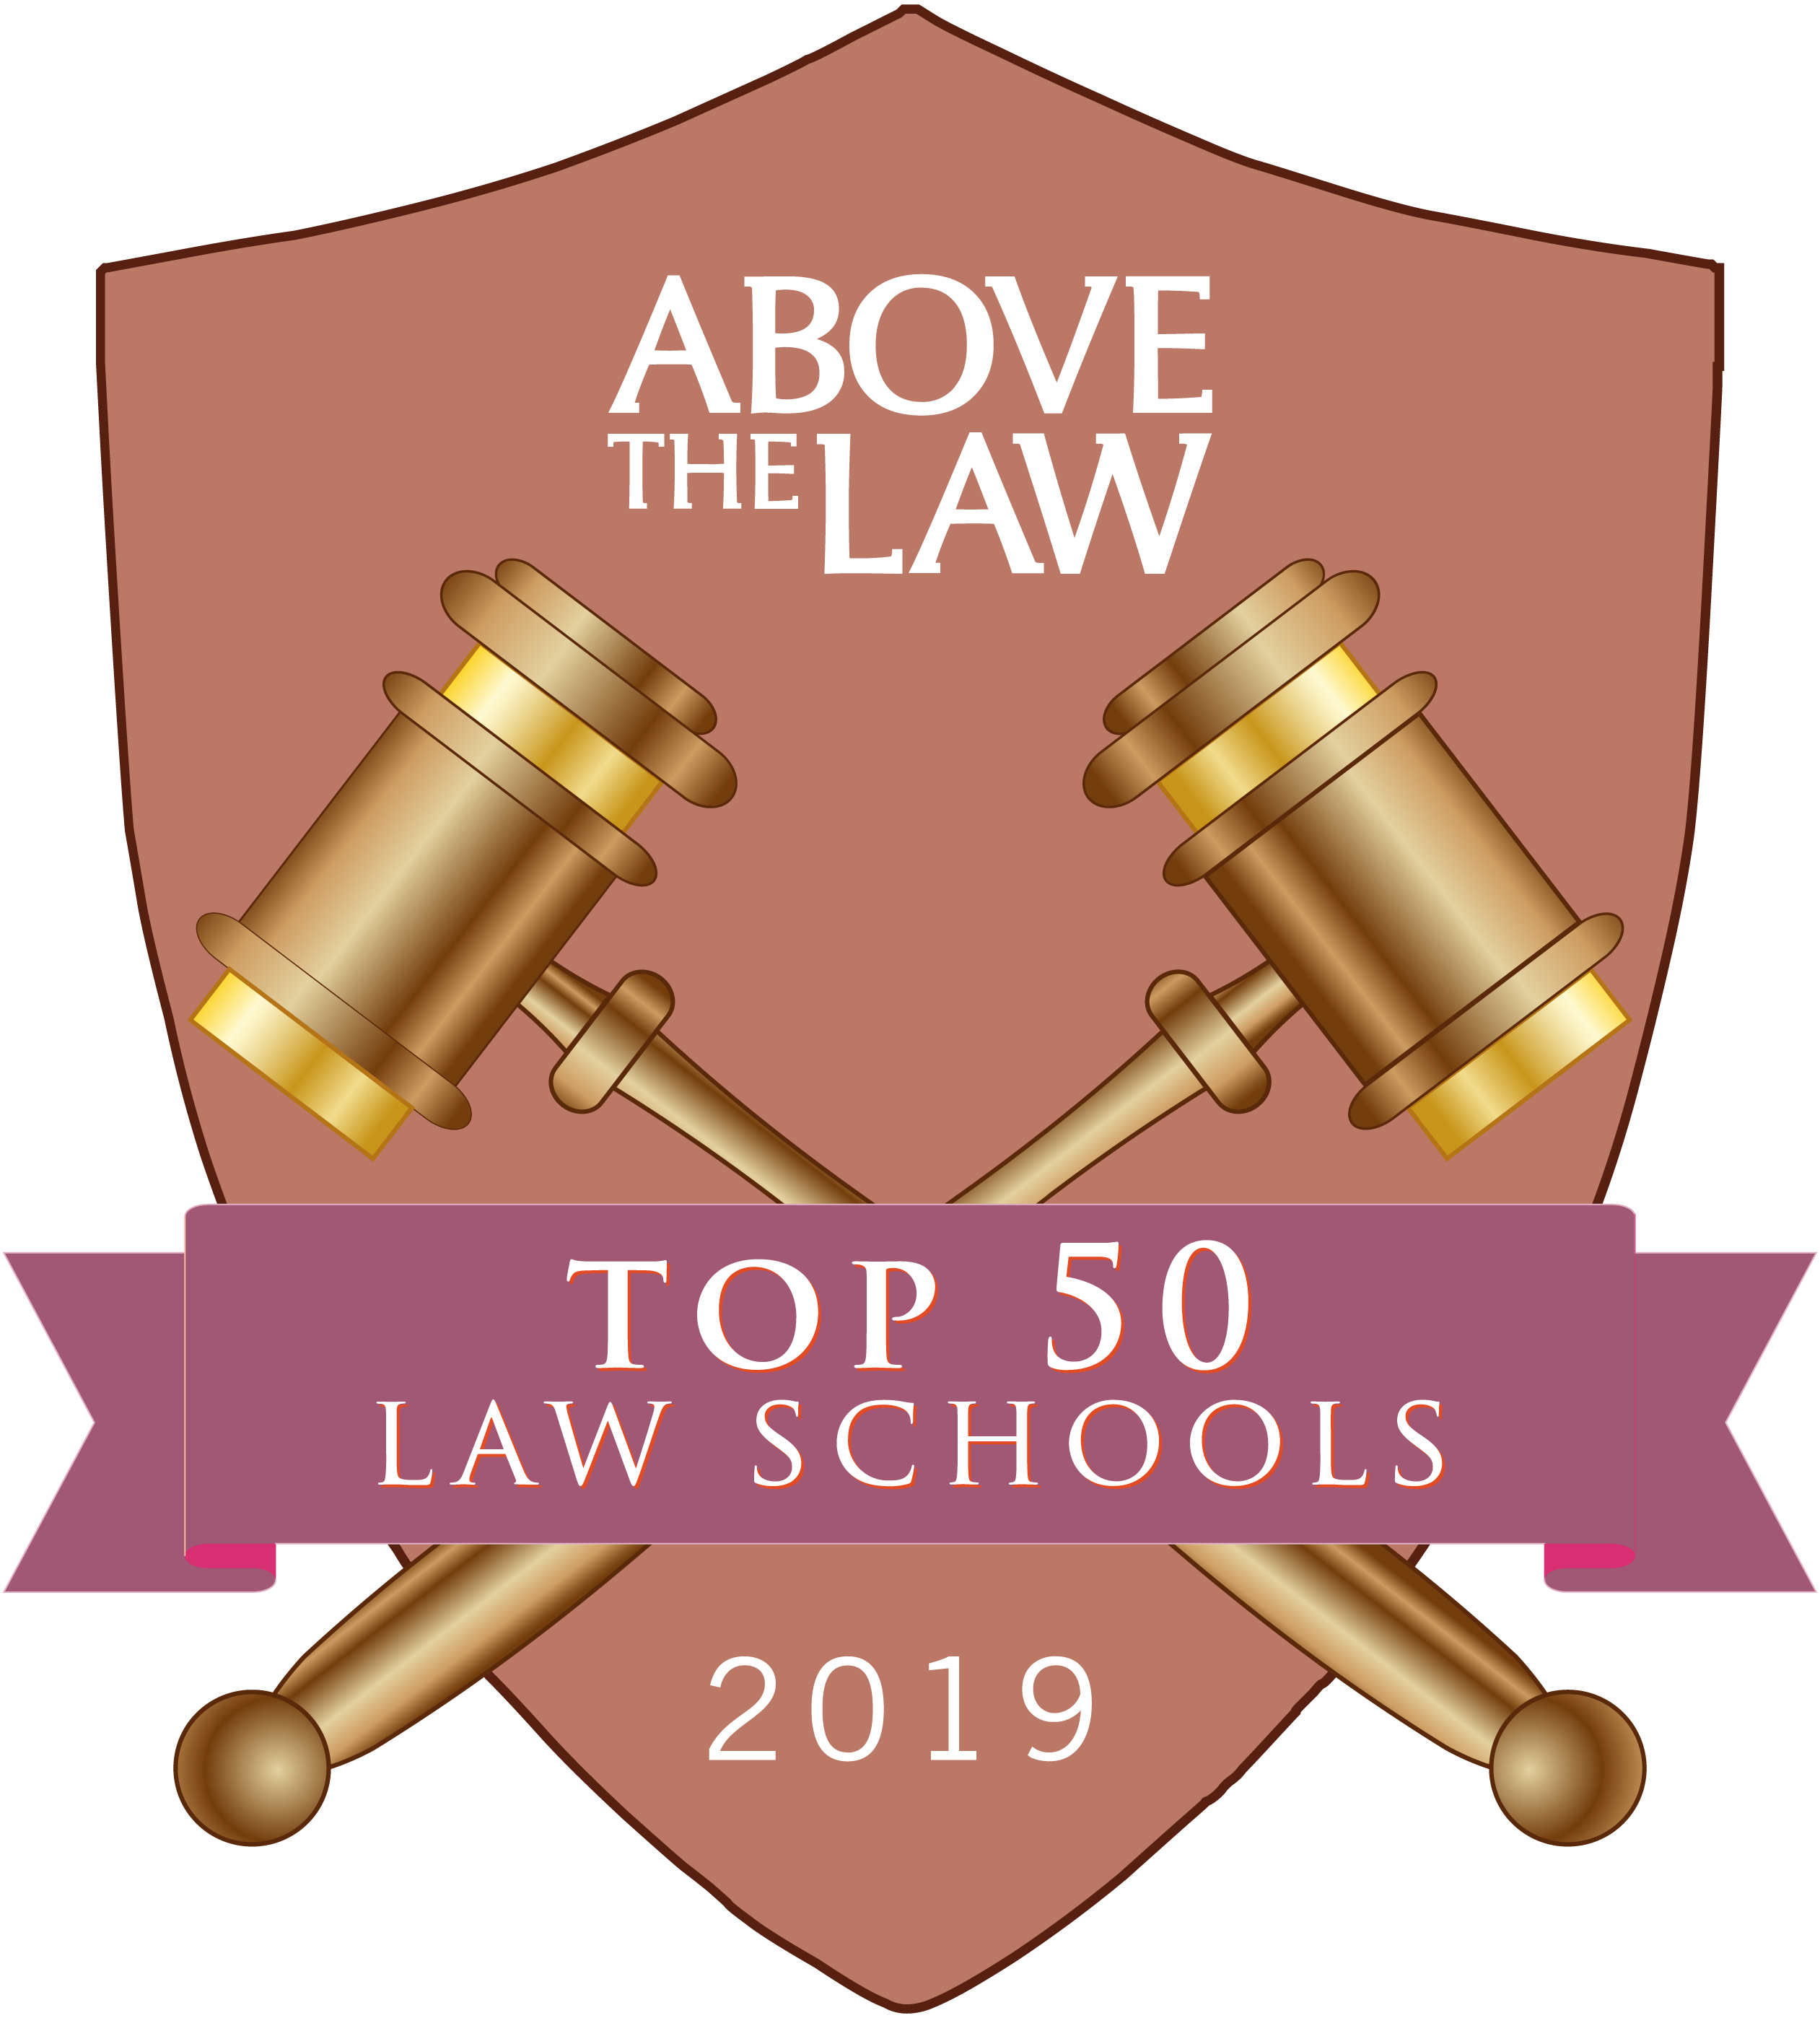 The atl top rankings. Laws clipart law school